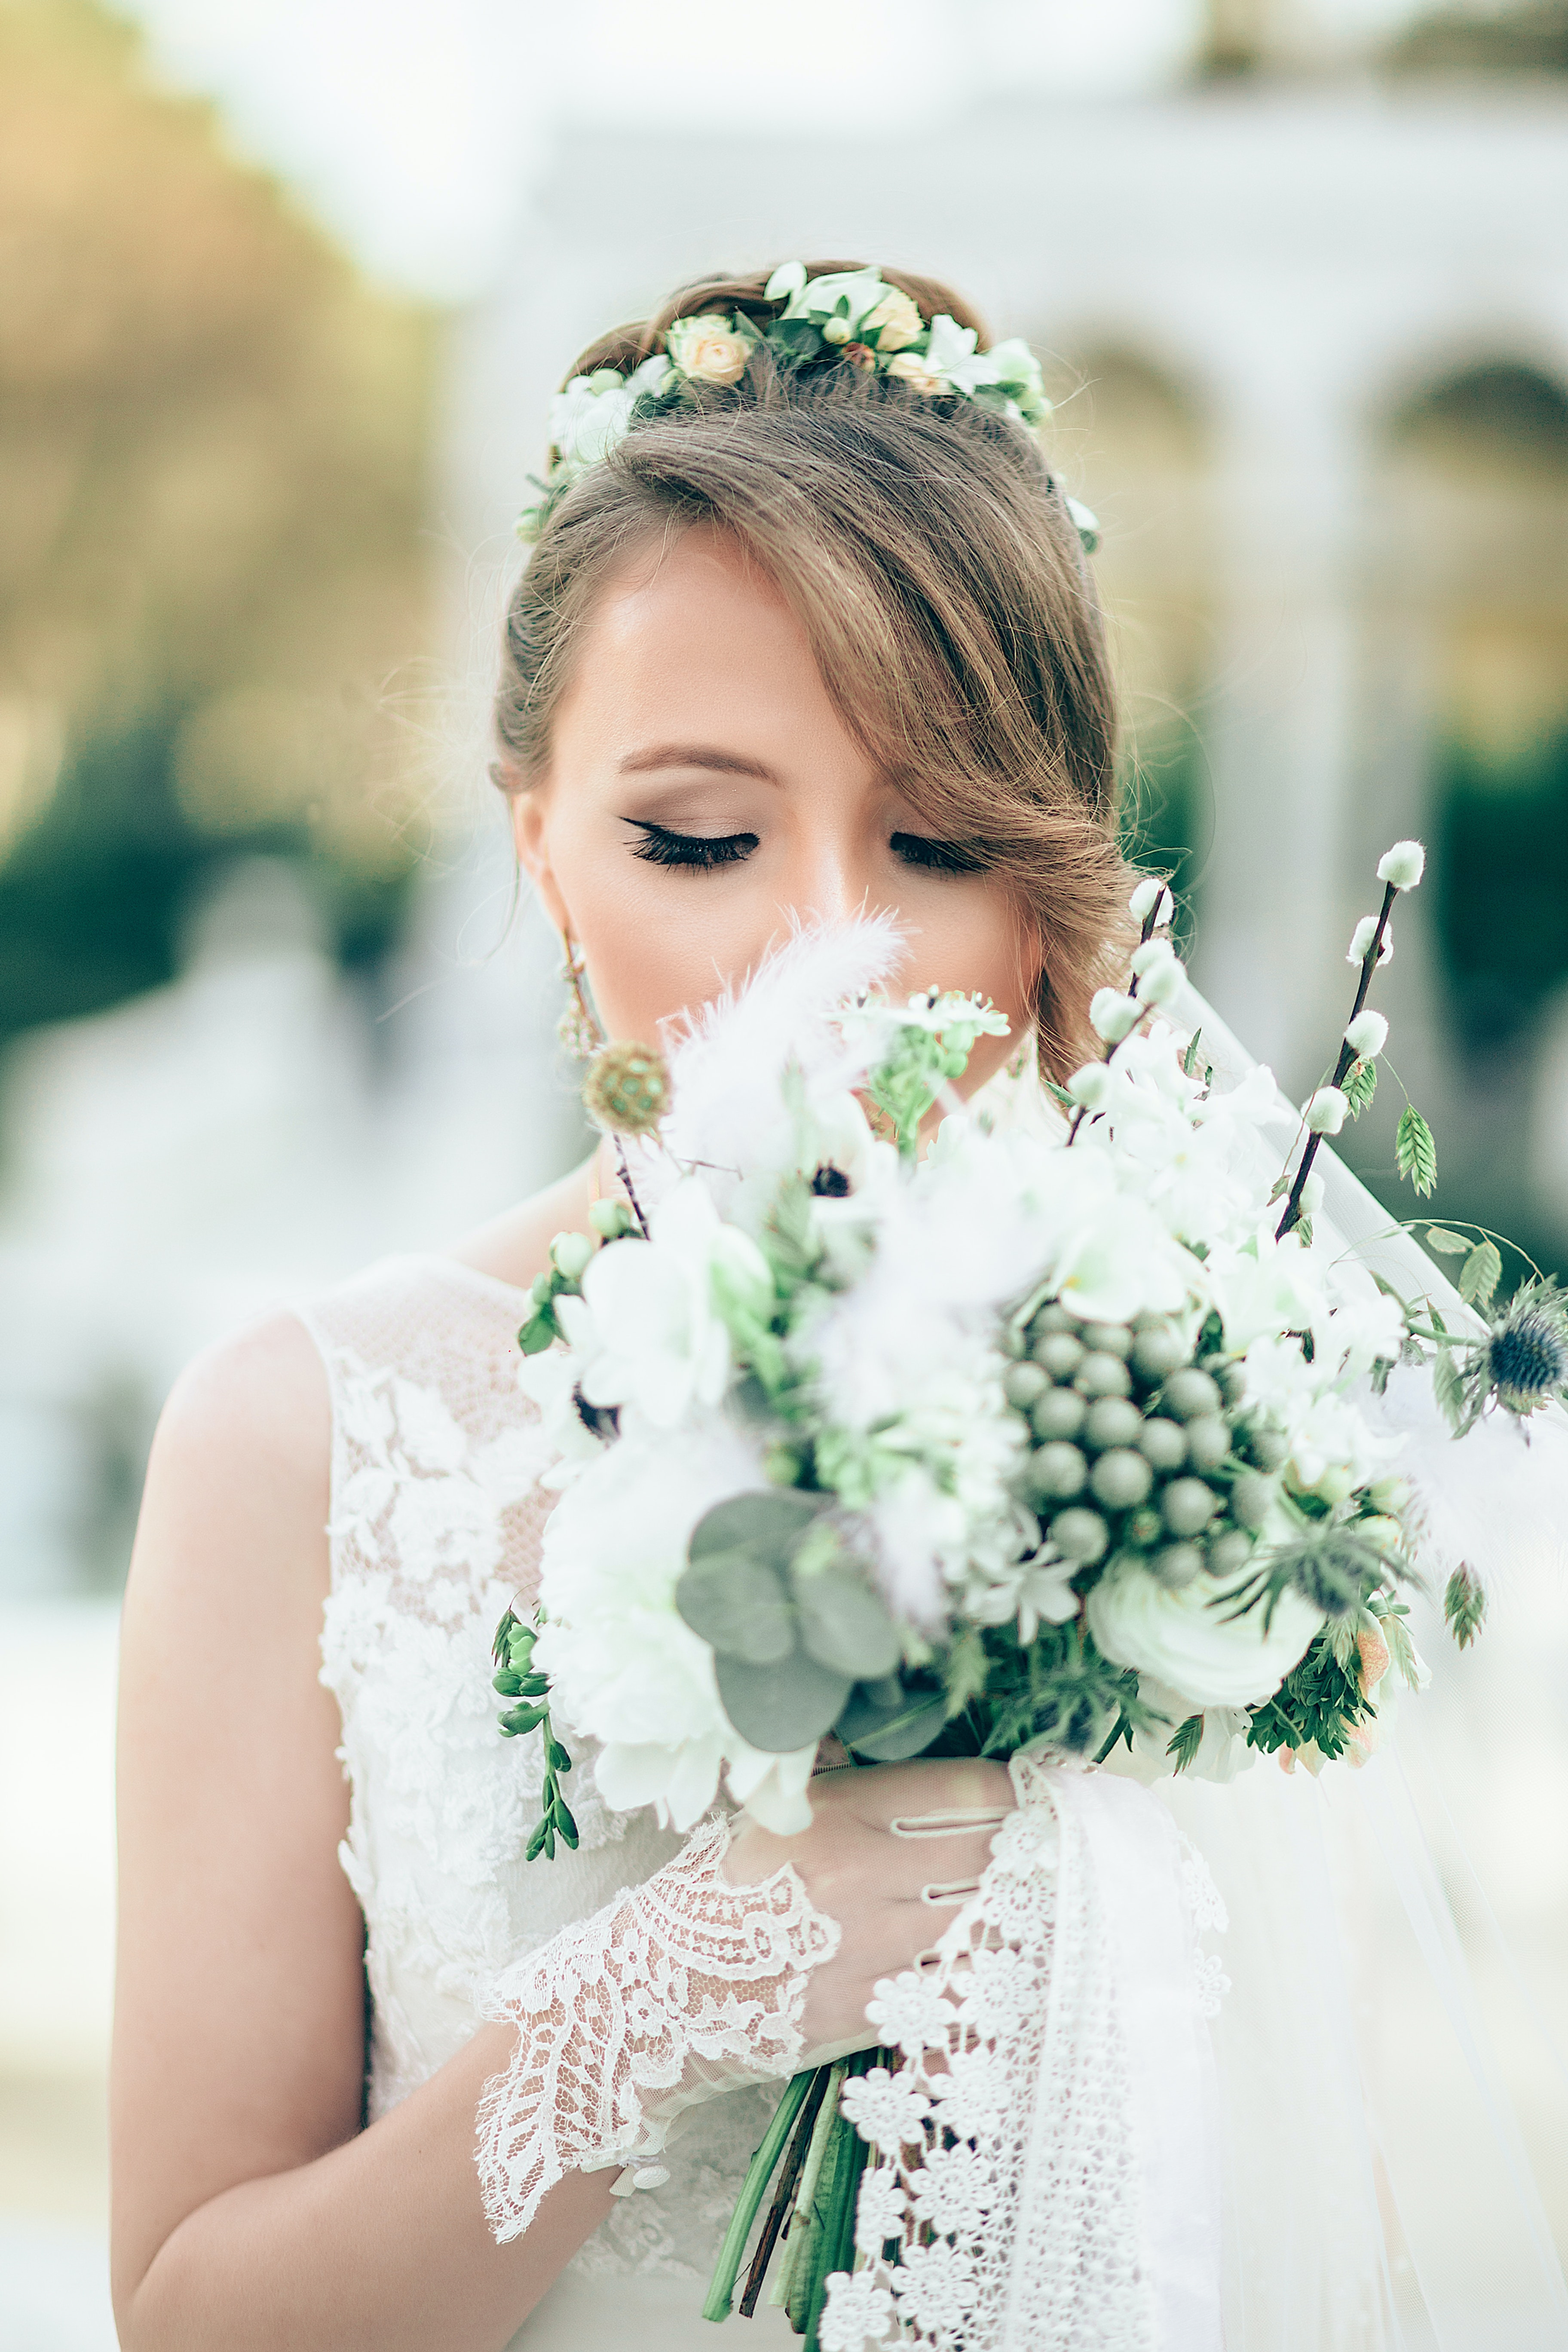 The Bridal Experience (Style Suite)